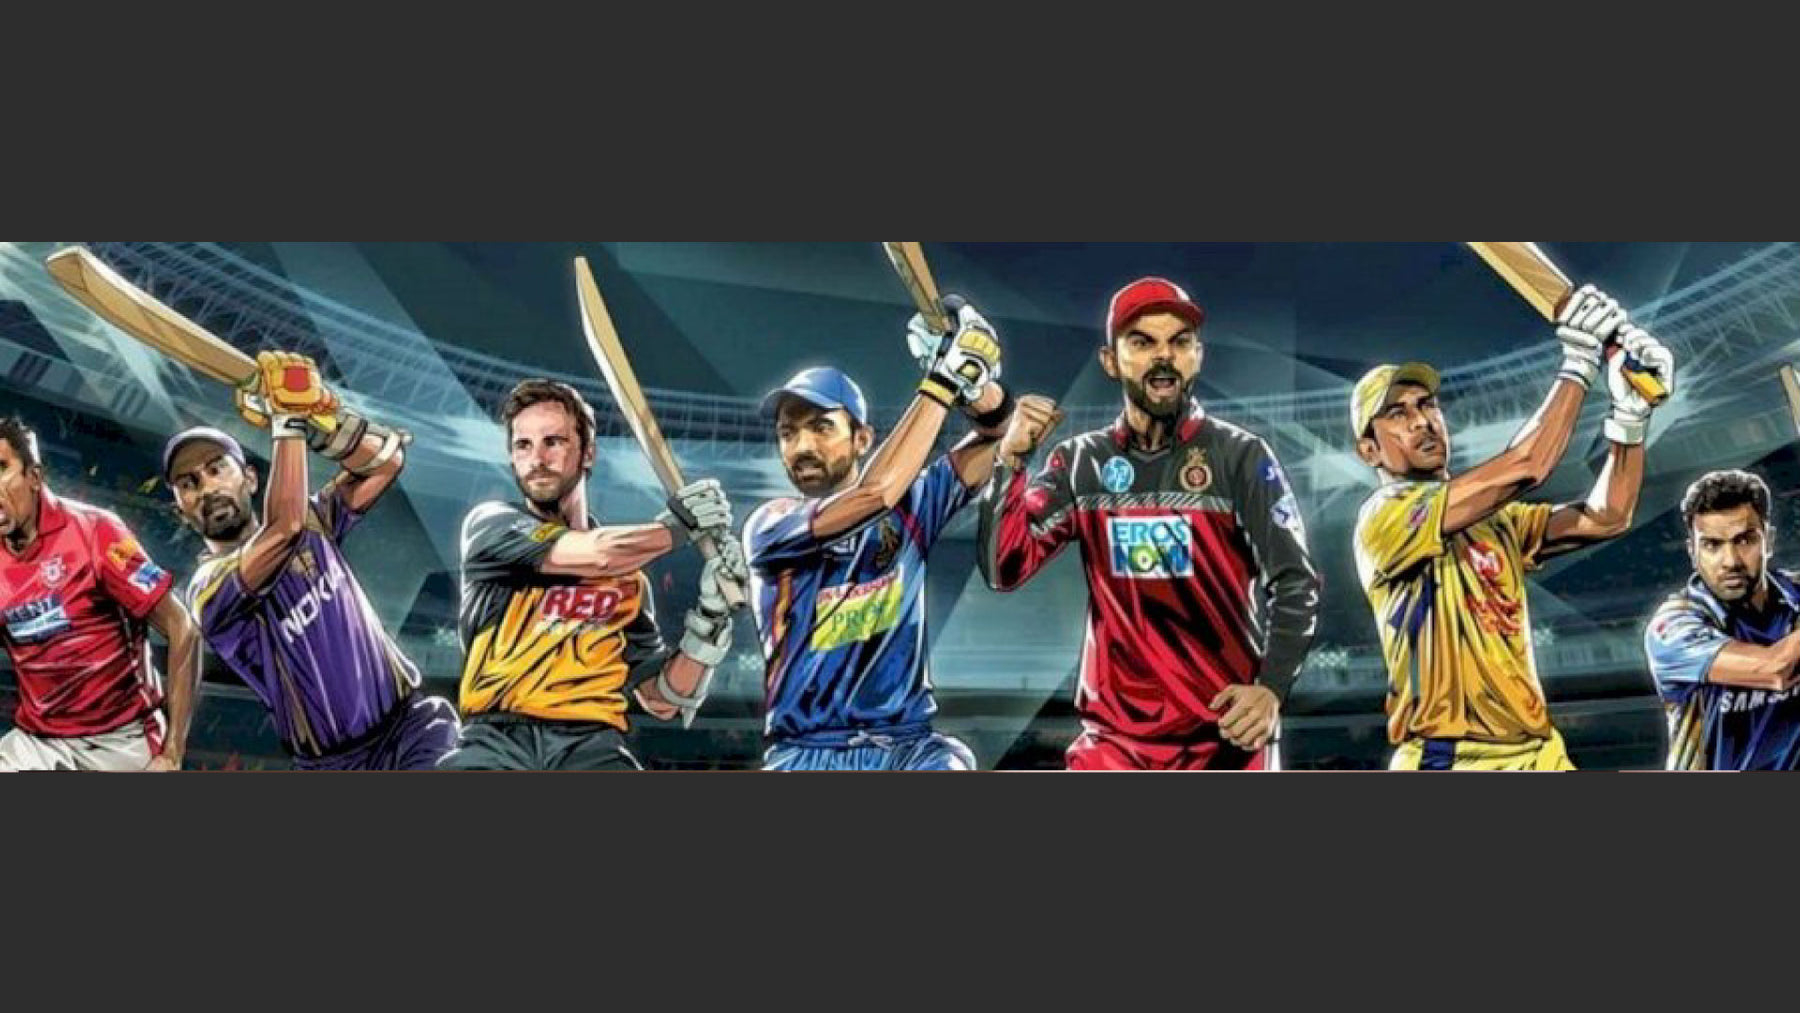 5 REASONS TO WATCH IPL 2020 ON A BIG SCREEN.